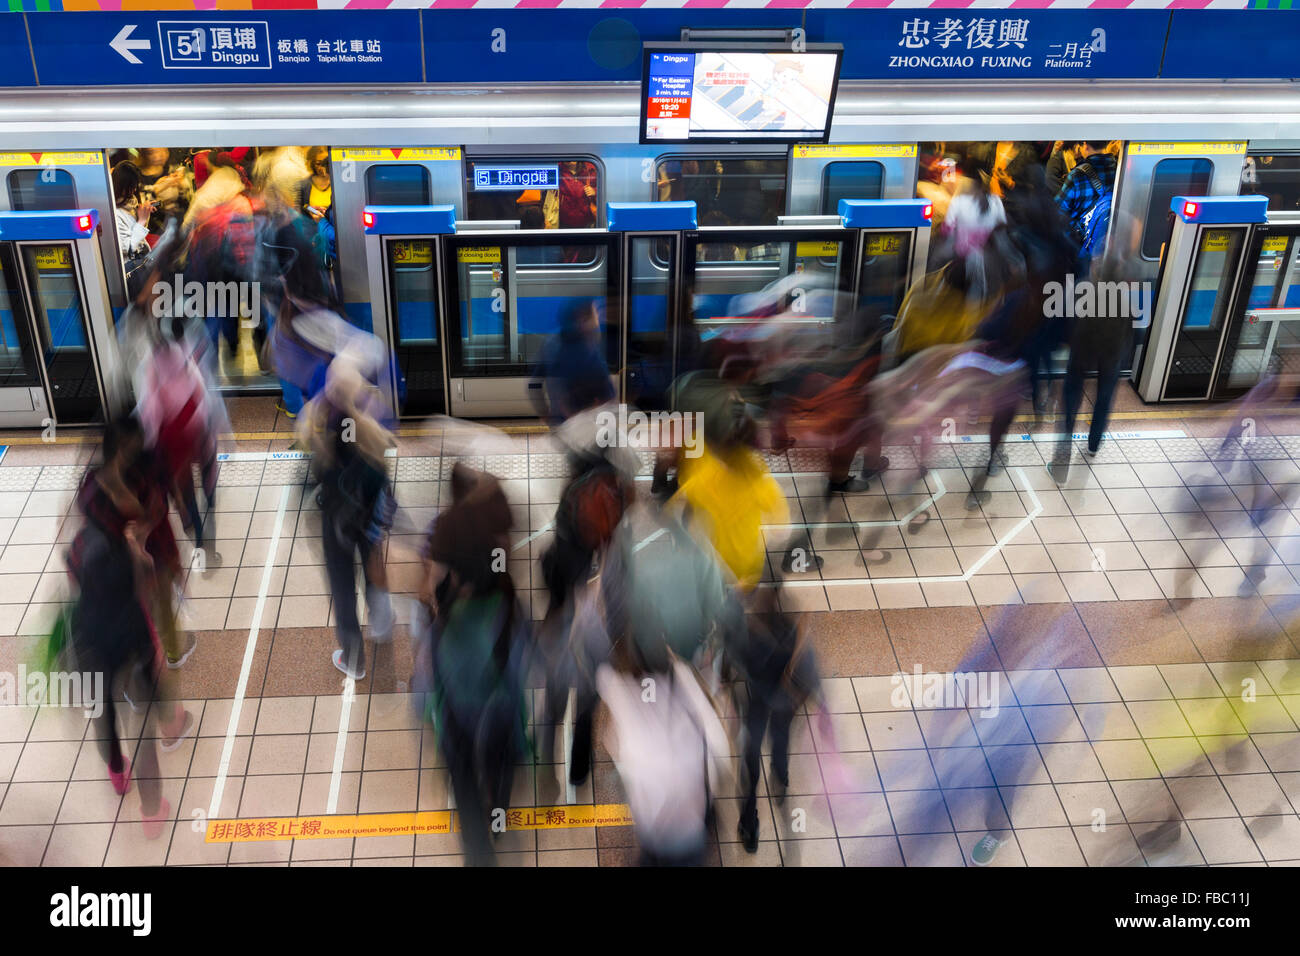 commuters-boarding-taipei-mrt-subway-at-